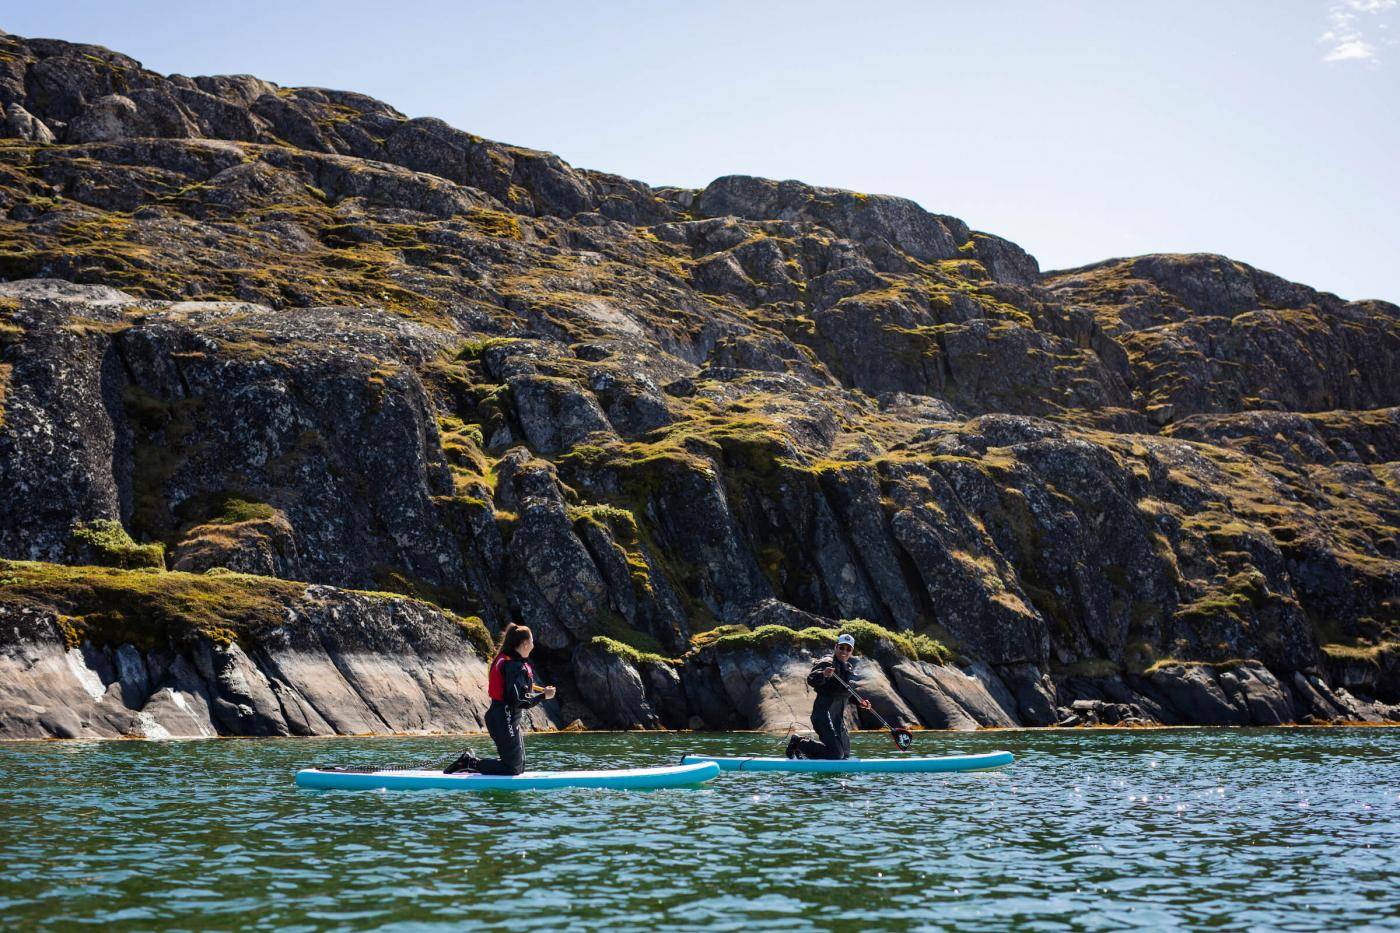 SUPs with rocky surroundings near Sisimiut. Photo - Aningaaq R. Carlsen, Visit Greenland